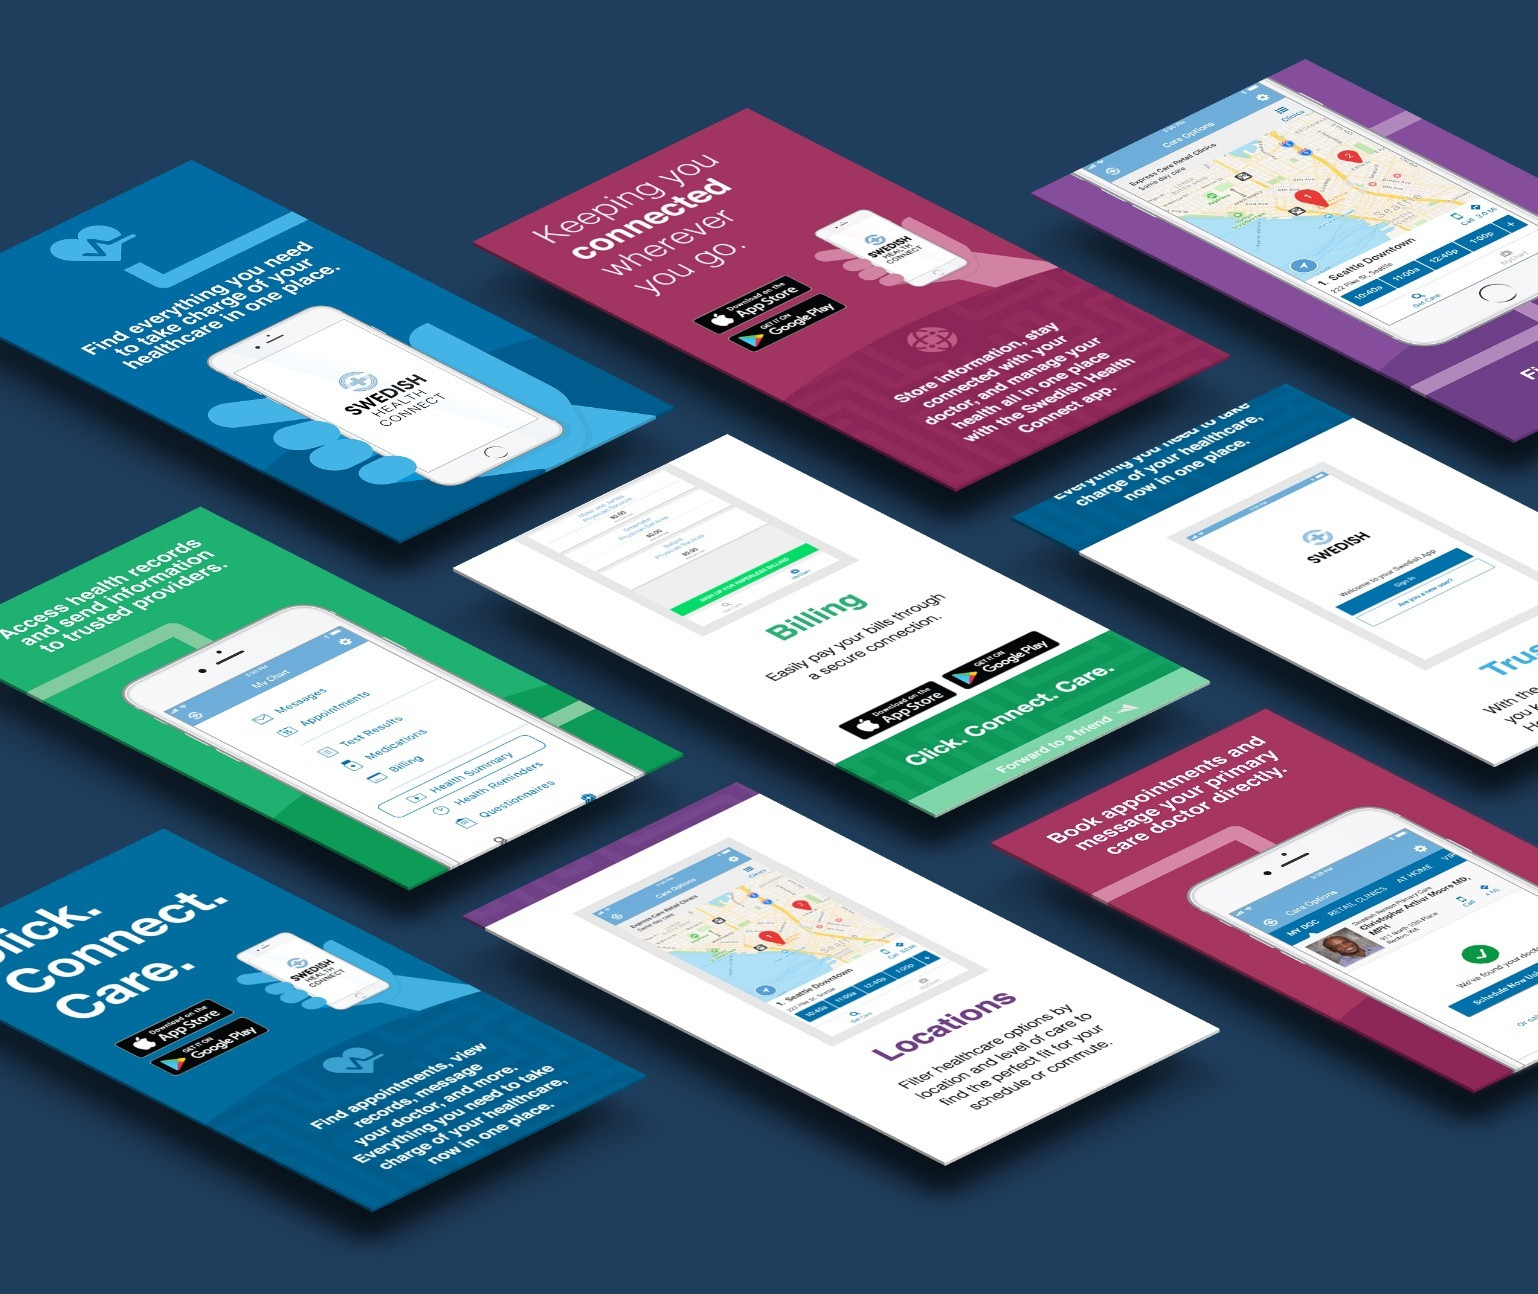 Illustration of promotional materials for the Swedish Health Connect App, laid out in an isometric tile grid.